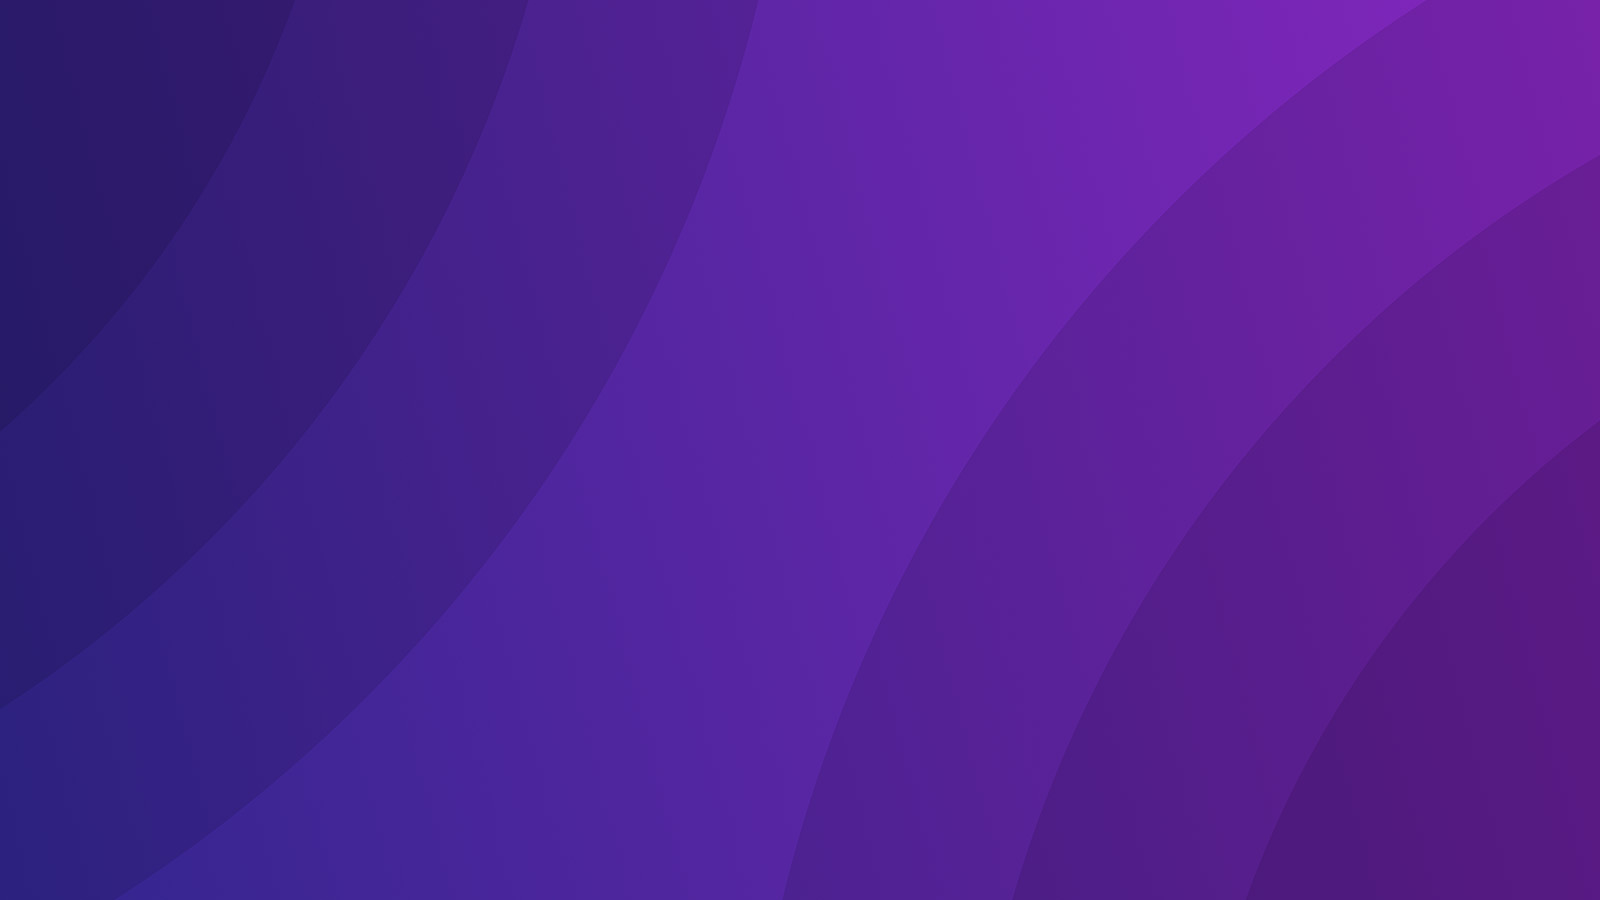 Google Wallpaper Images Fall Vy67 Circle Blue Purple Simple Pattern Background Wallpaper